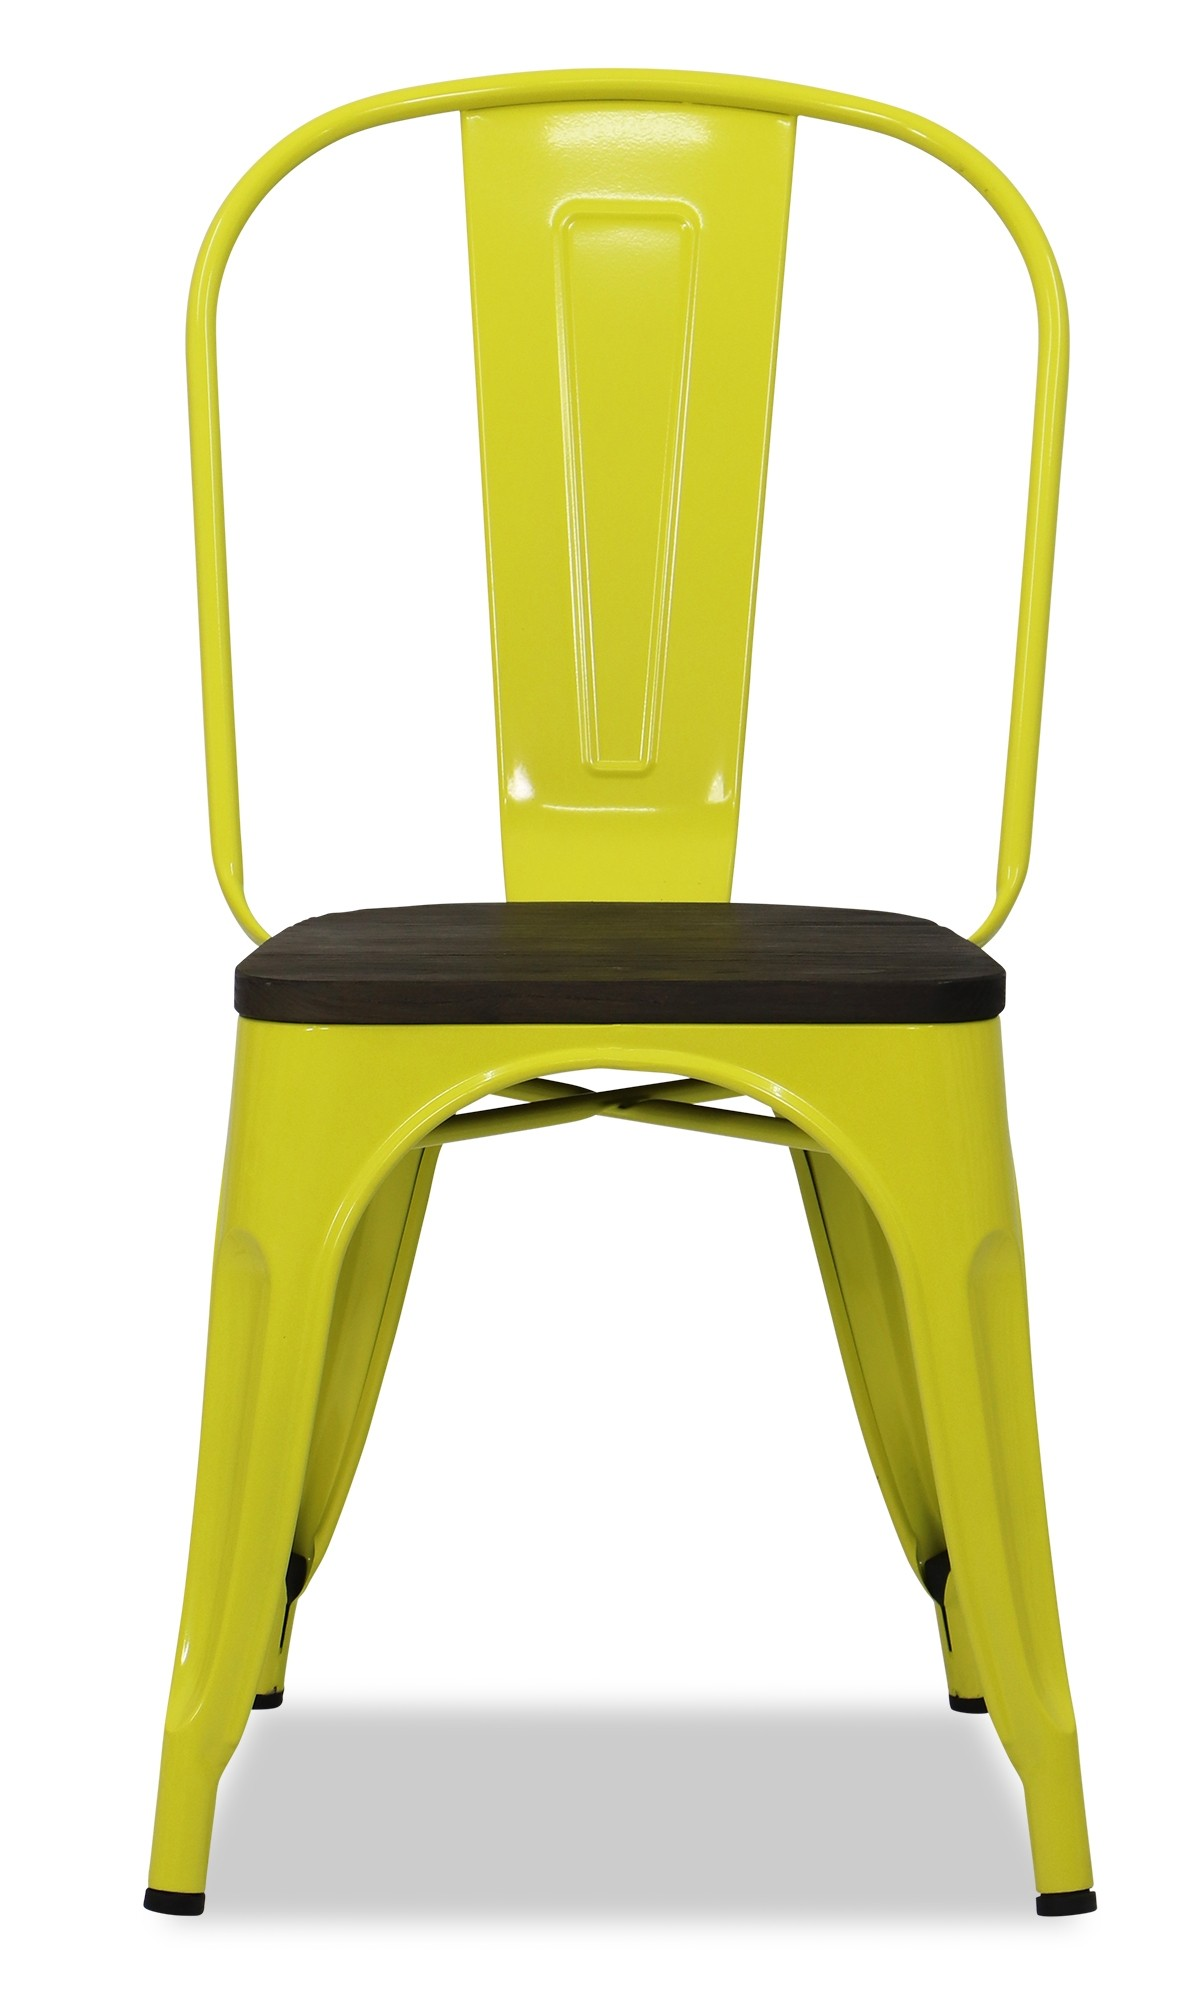 Metal Chair With Wood Seat Retro Metal Chair With Wooden Seat In Yellow Furniture